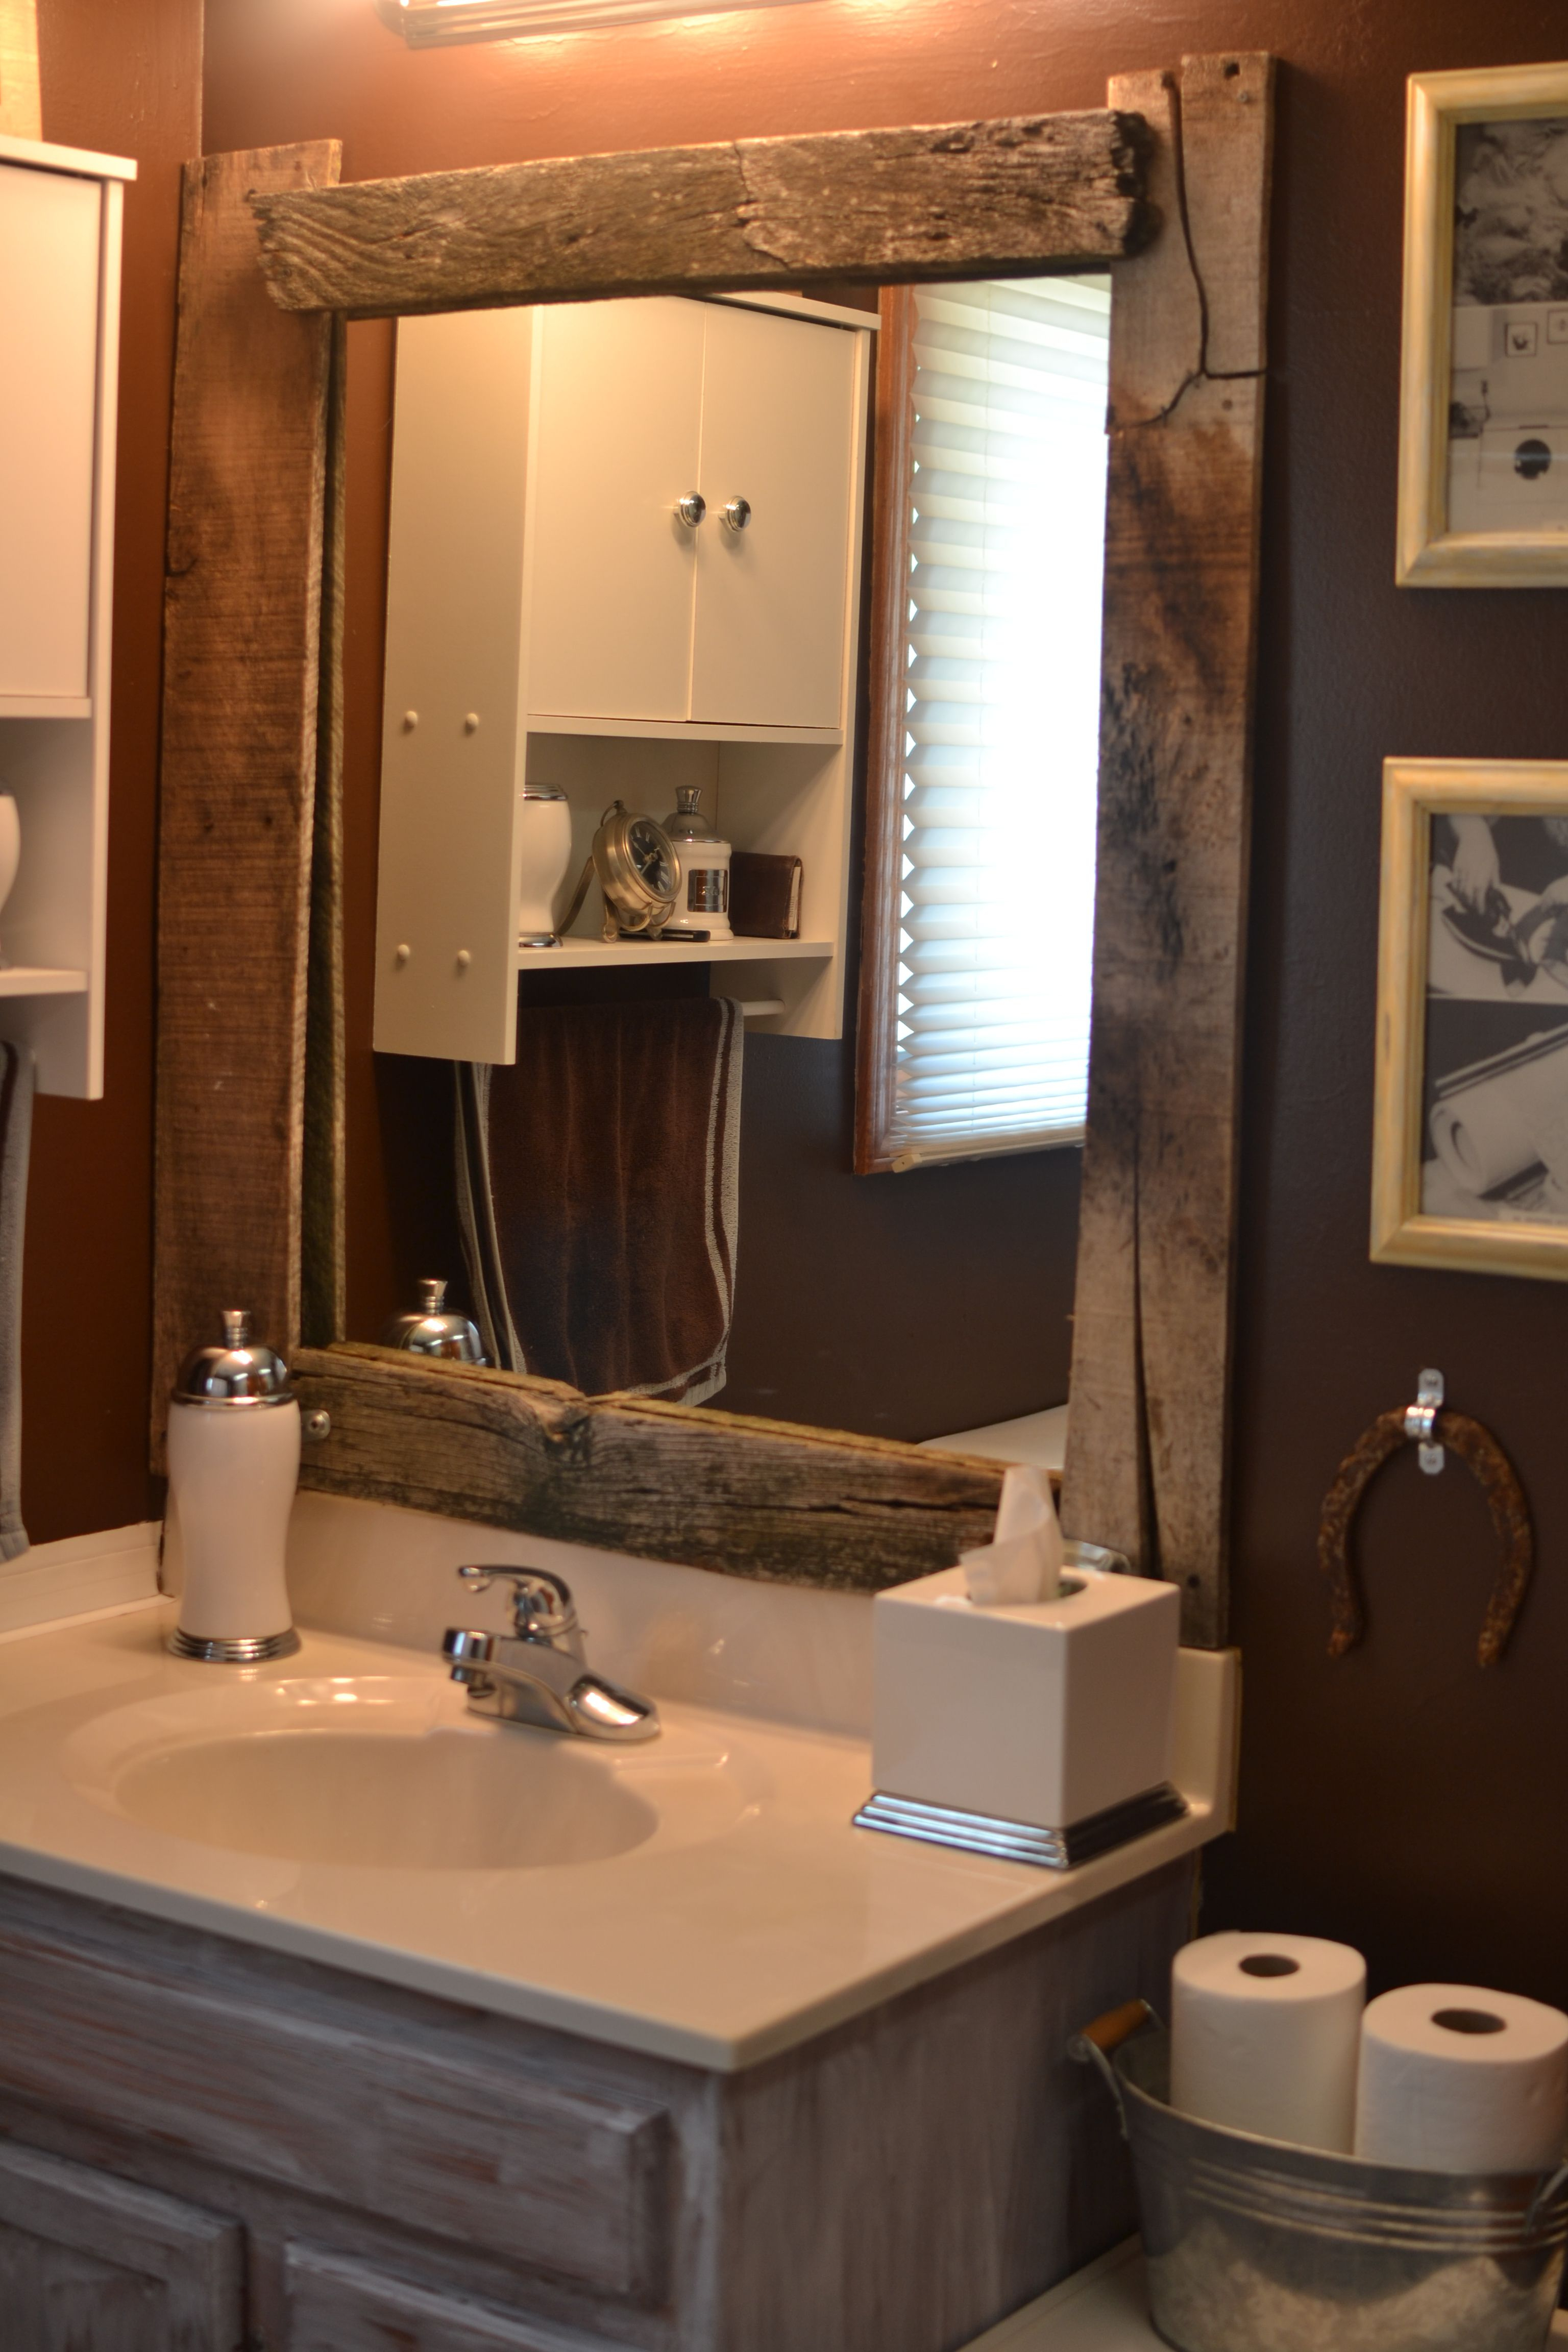 Rustic Vanity Mirrors For Bathroom – 16.cpdbl.streuobsttraum (Image 16 of 20)